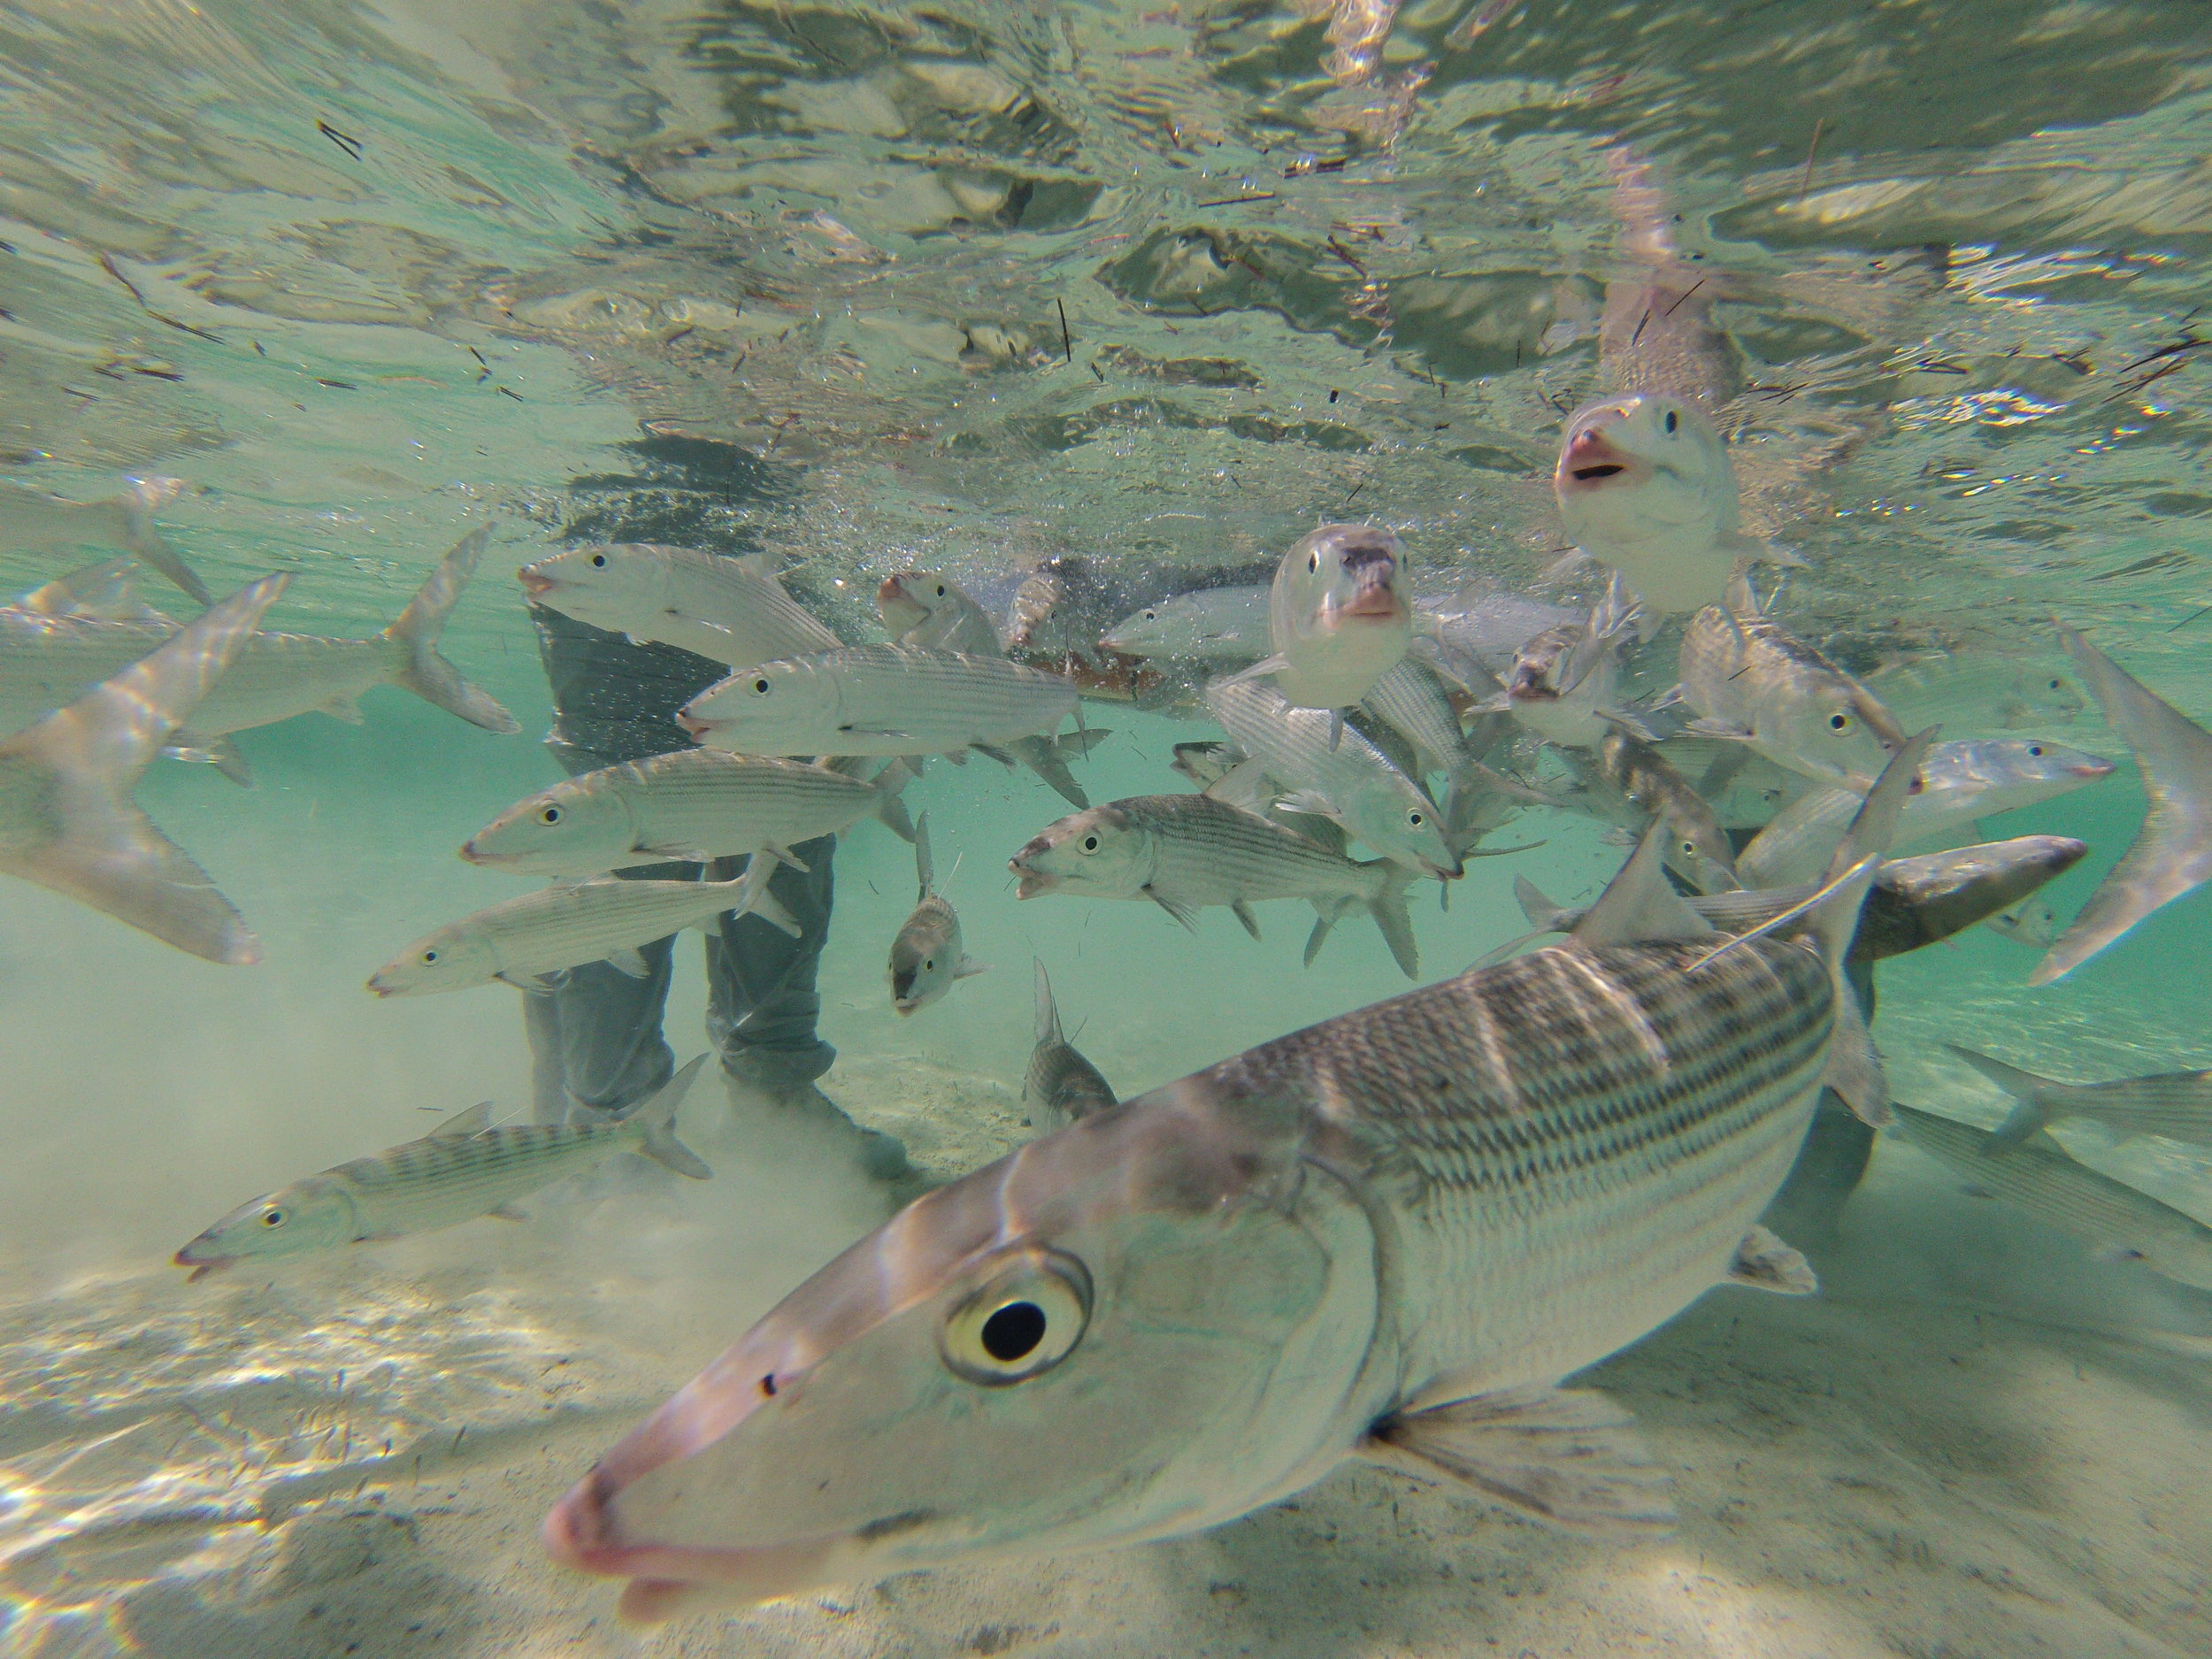 Freshly tagged bonefish being released.